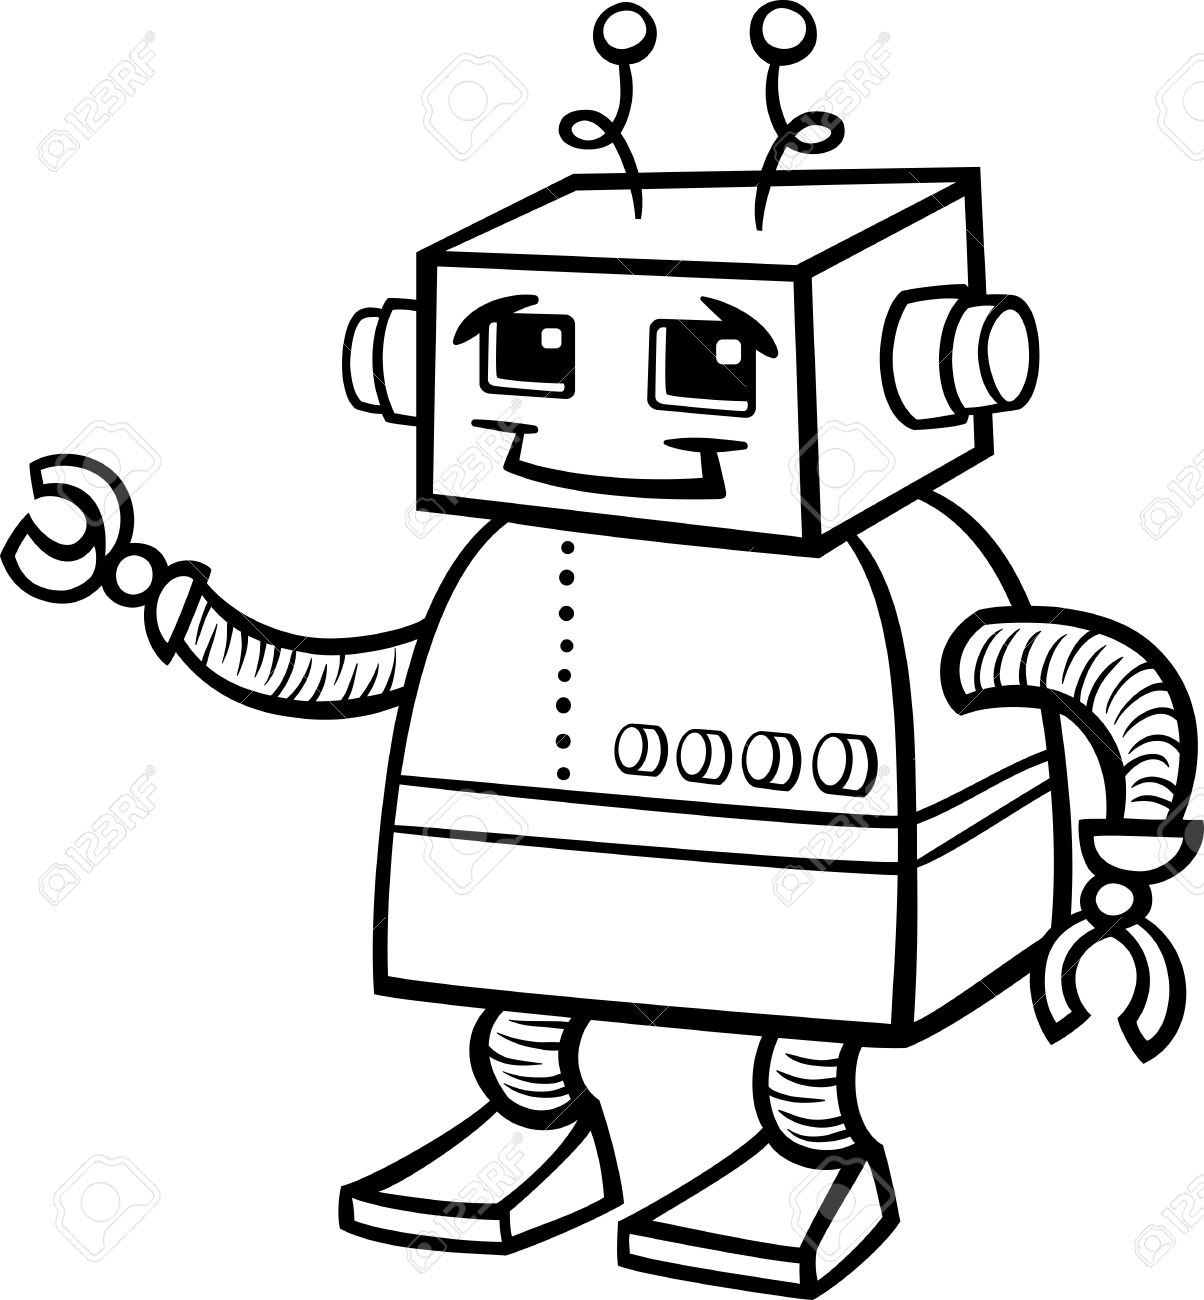 1204x1300 Free Robot Clipart Black And White